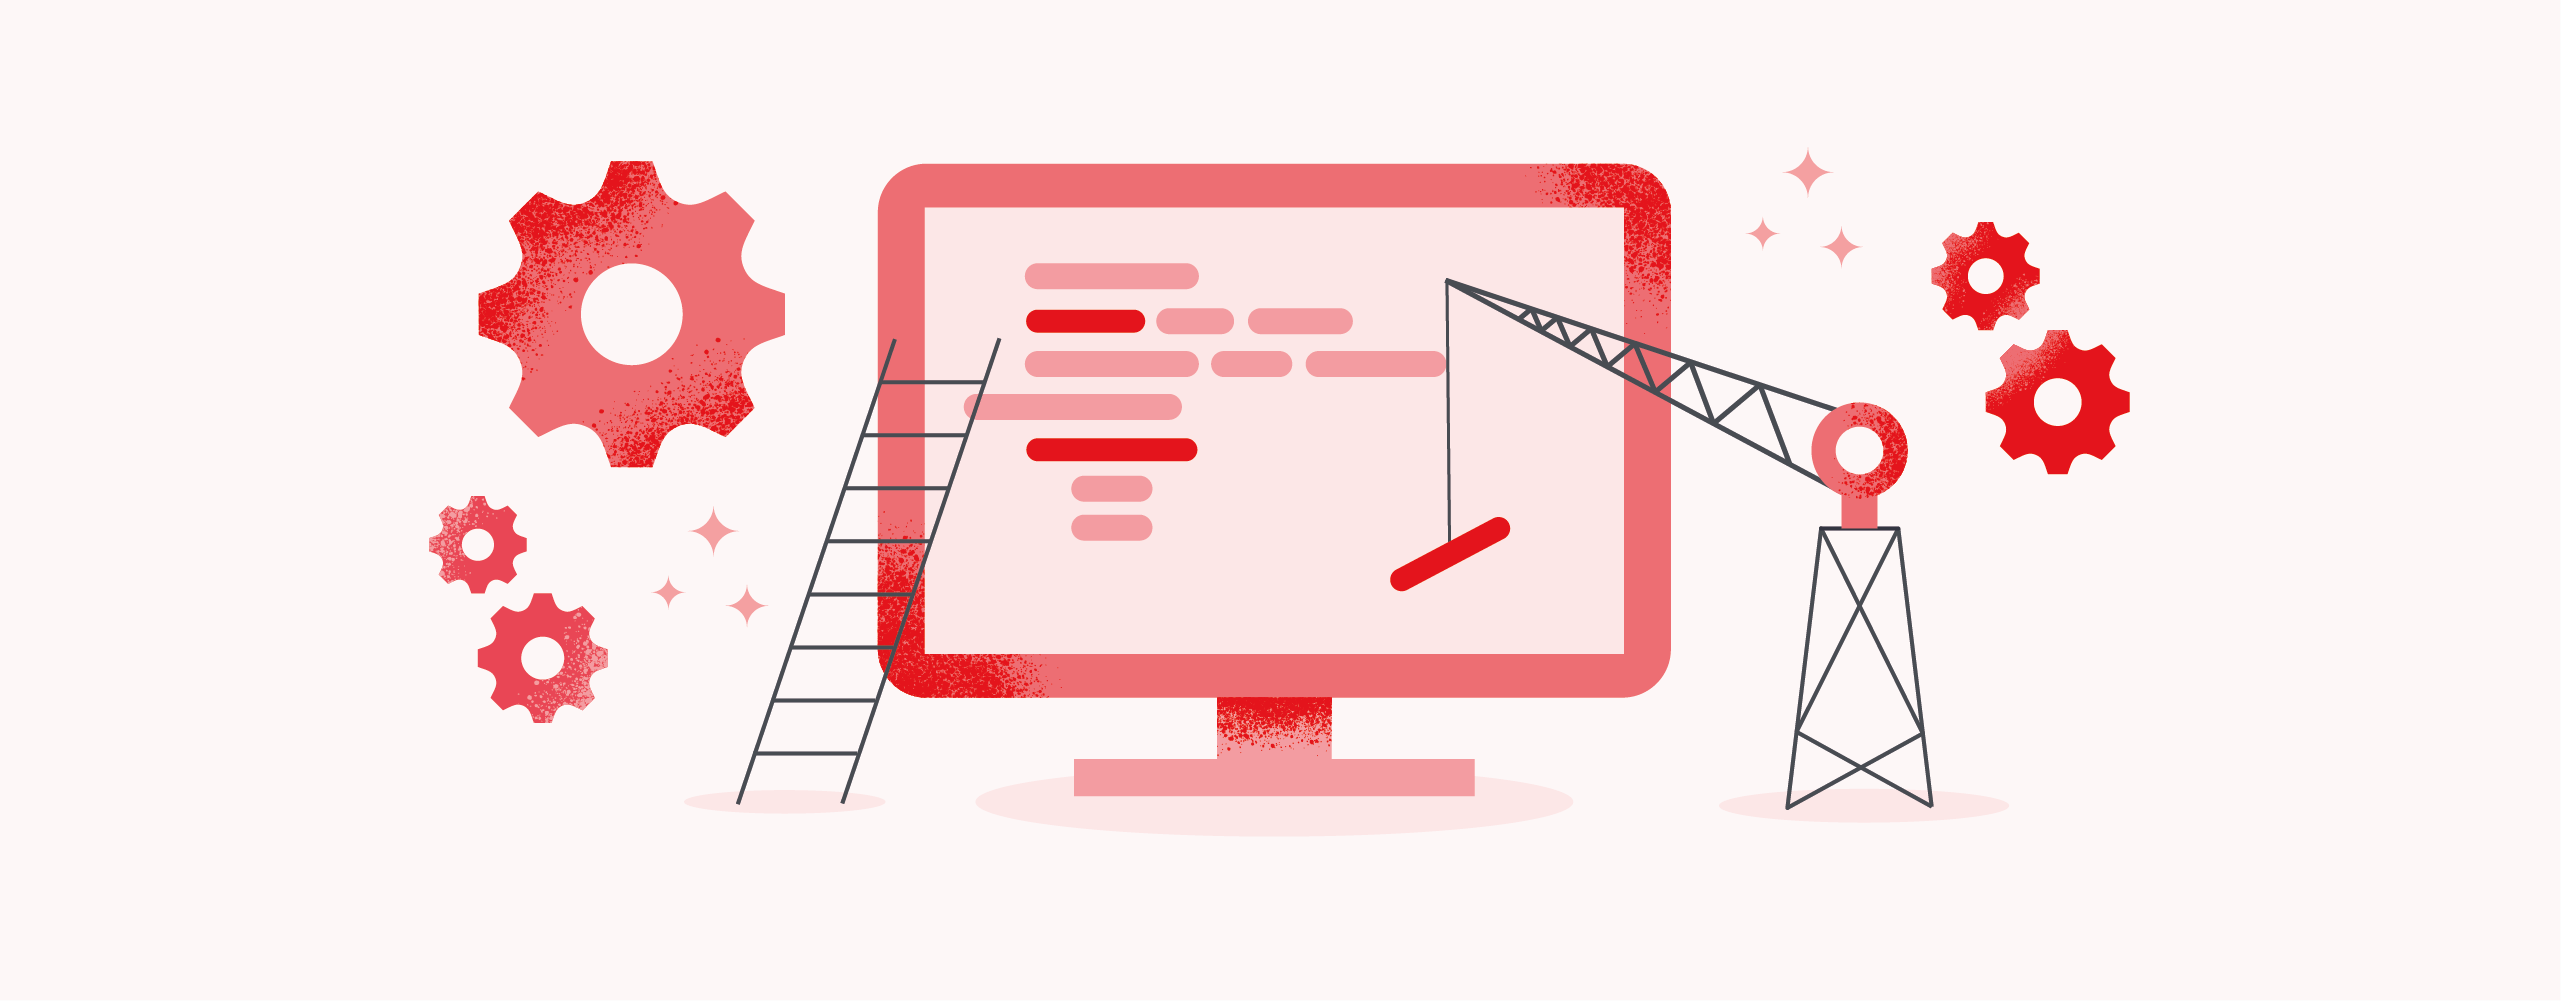 Fixing Legacy Code — The Obstacles and Solutions